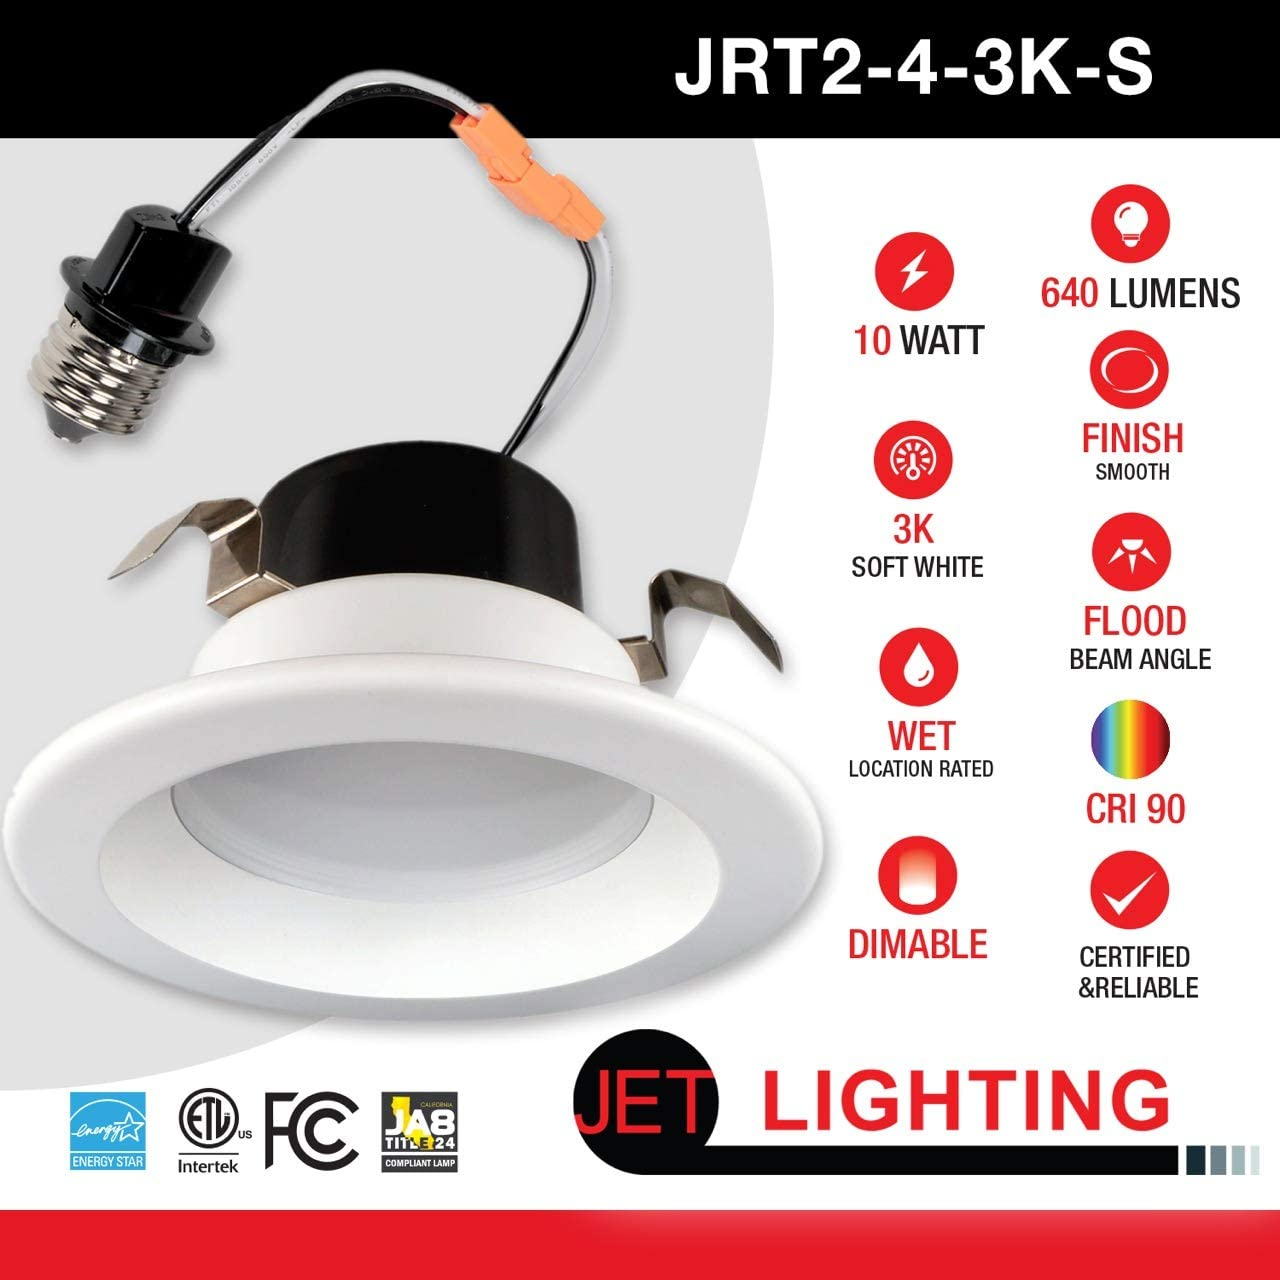 Title 24 3000K Soft White 12W 3000K, 6 PACK JET LIGHTING 5//6 Inch Dimmable LED Retrofit Recessed Downlight Trim 800 Lumens Smooth Finish ENERGY STAR UL Listed California JA8 2016-E Compliant